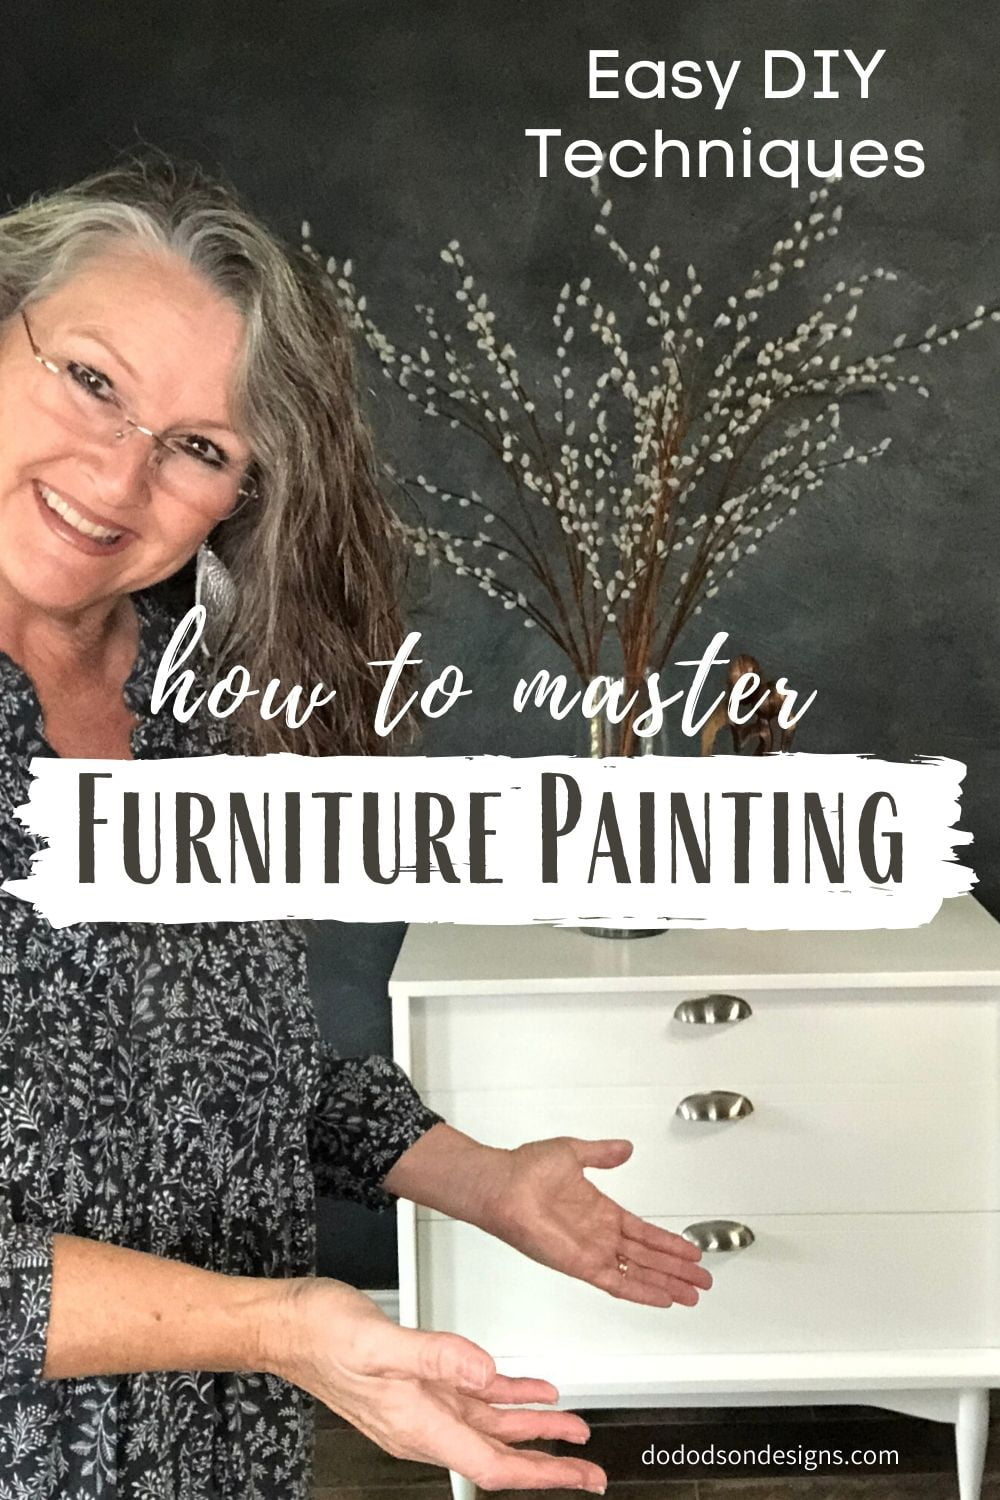 How To Master Furniture Painting The First Time!